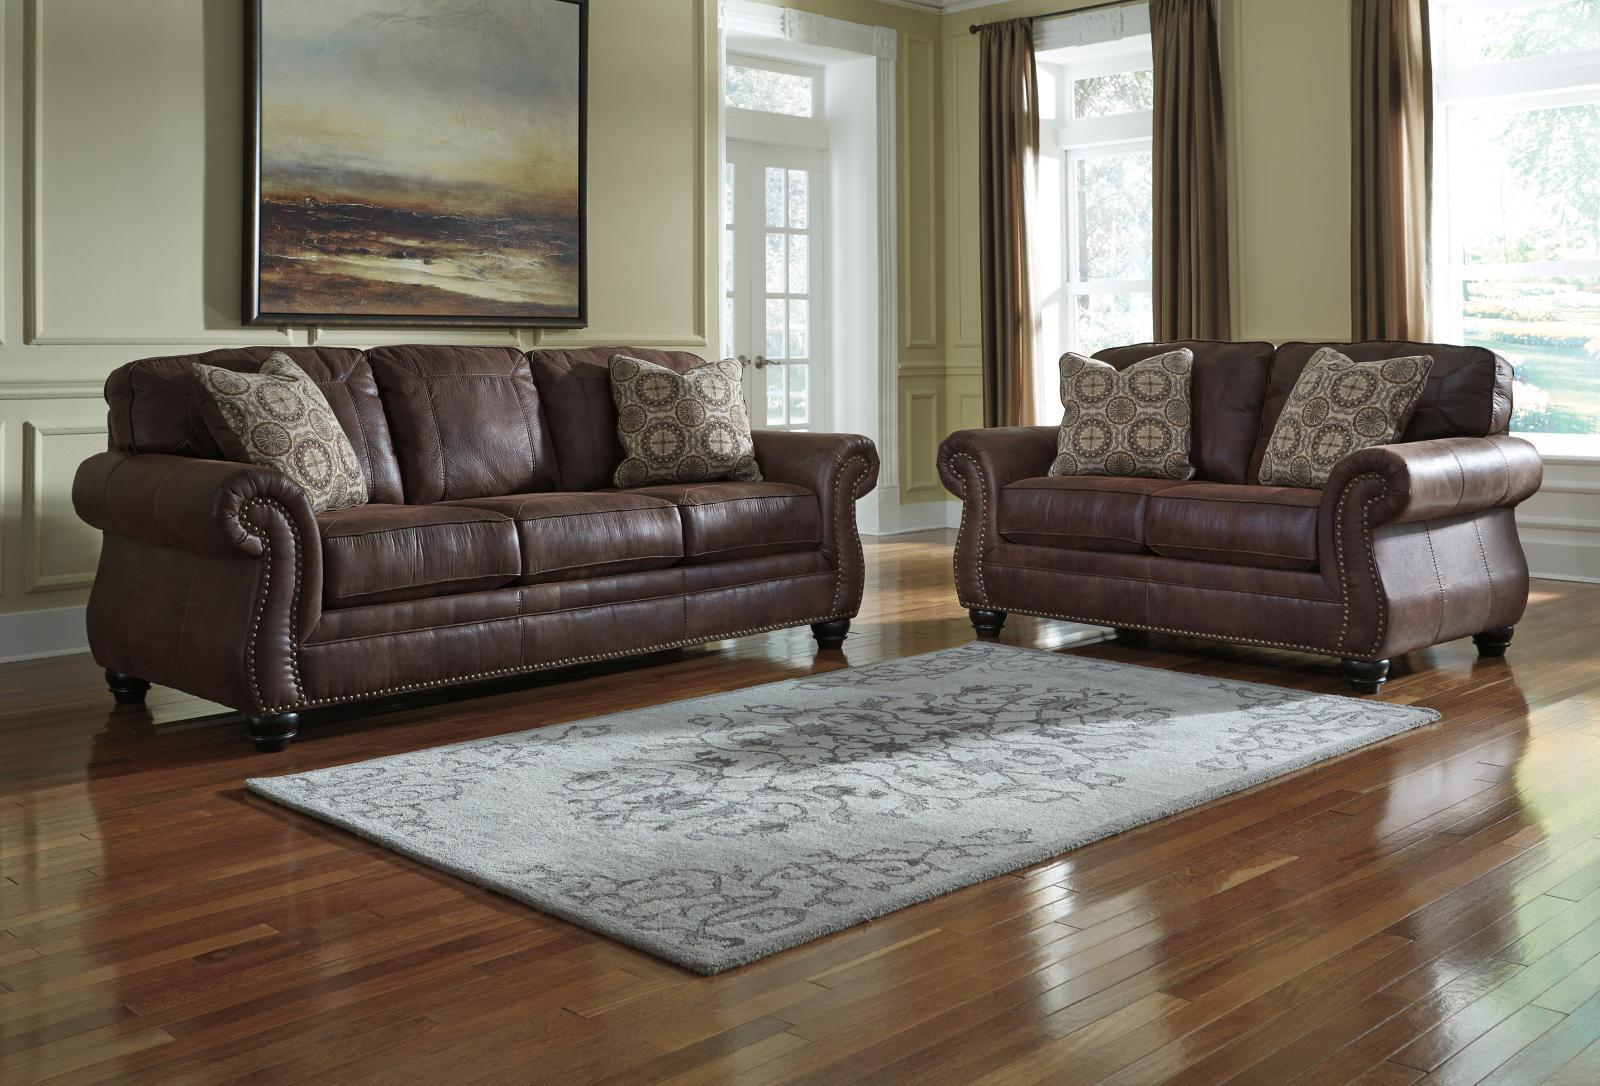 Ashley Breville Living Room Set 2pcs in Espresso Faux Leather Traditional Style